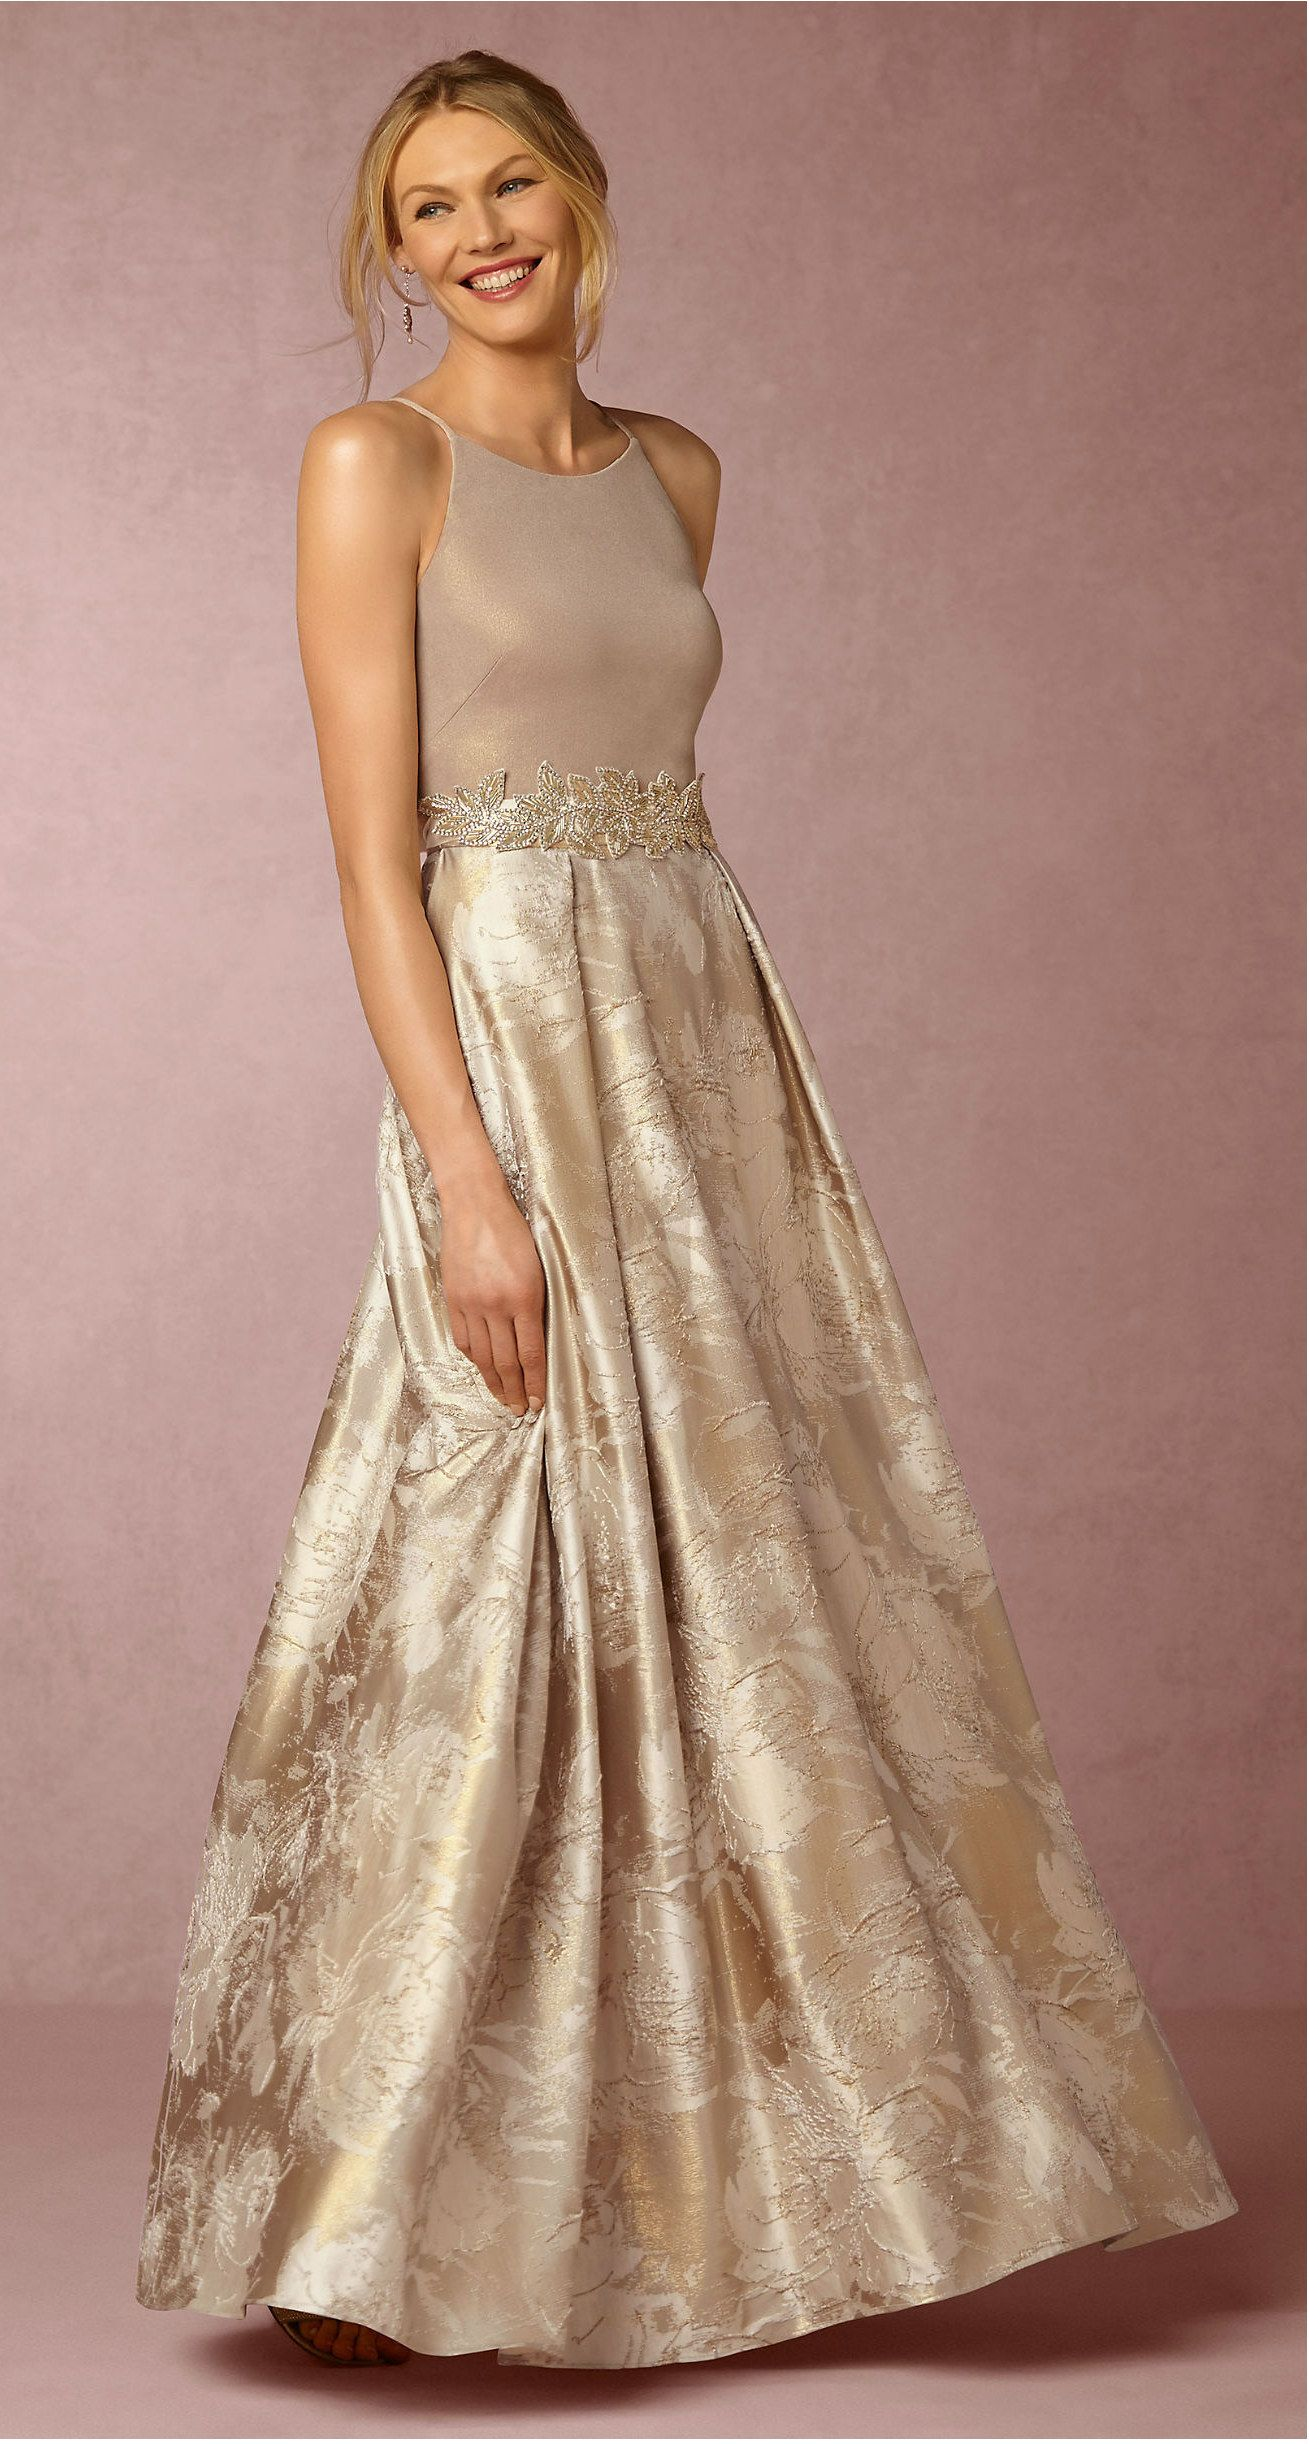 c03e2086a18 Champagne mother-of-the-bride dress